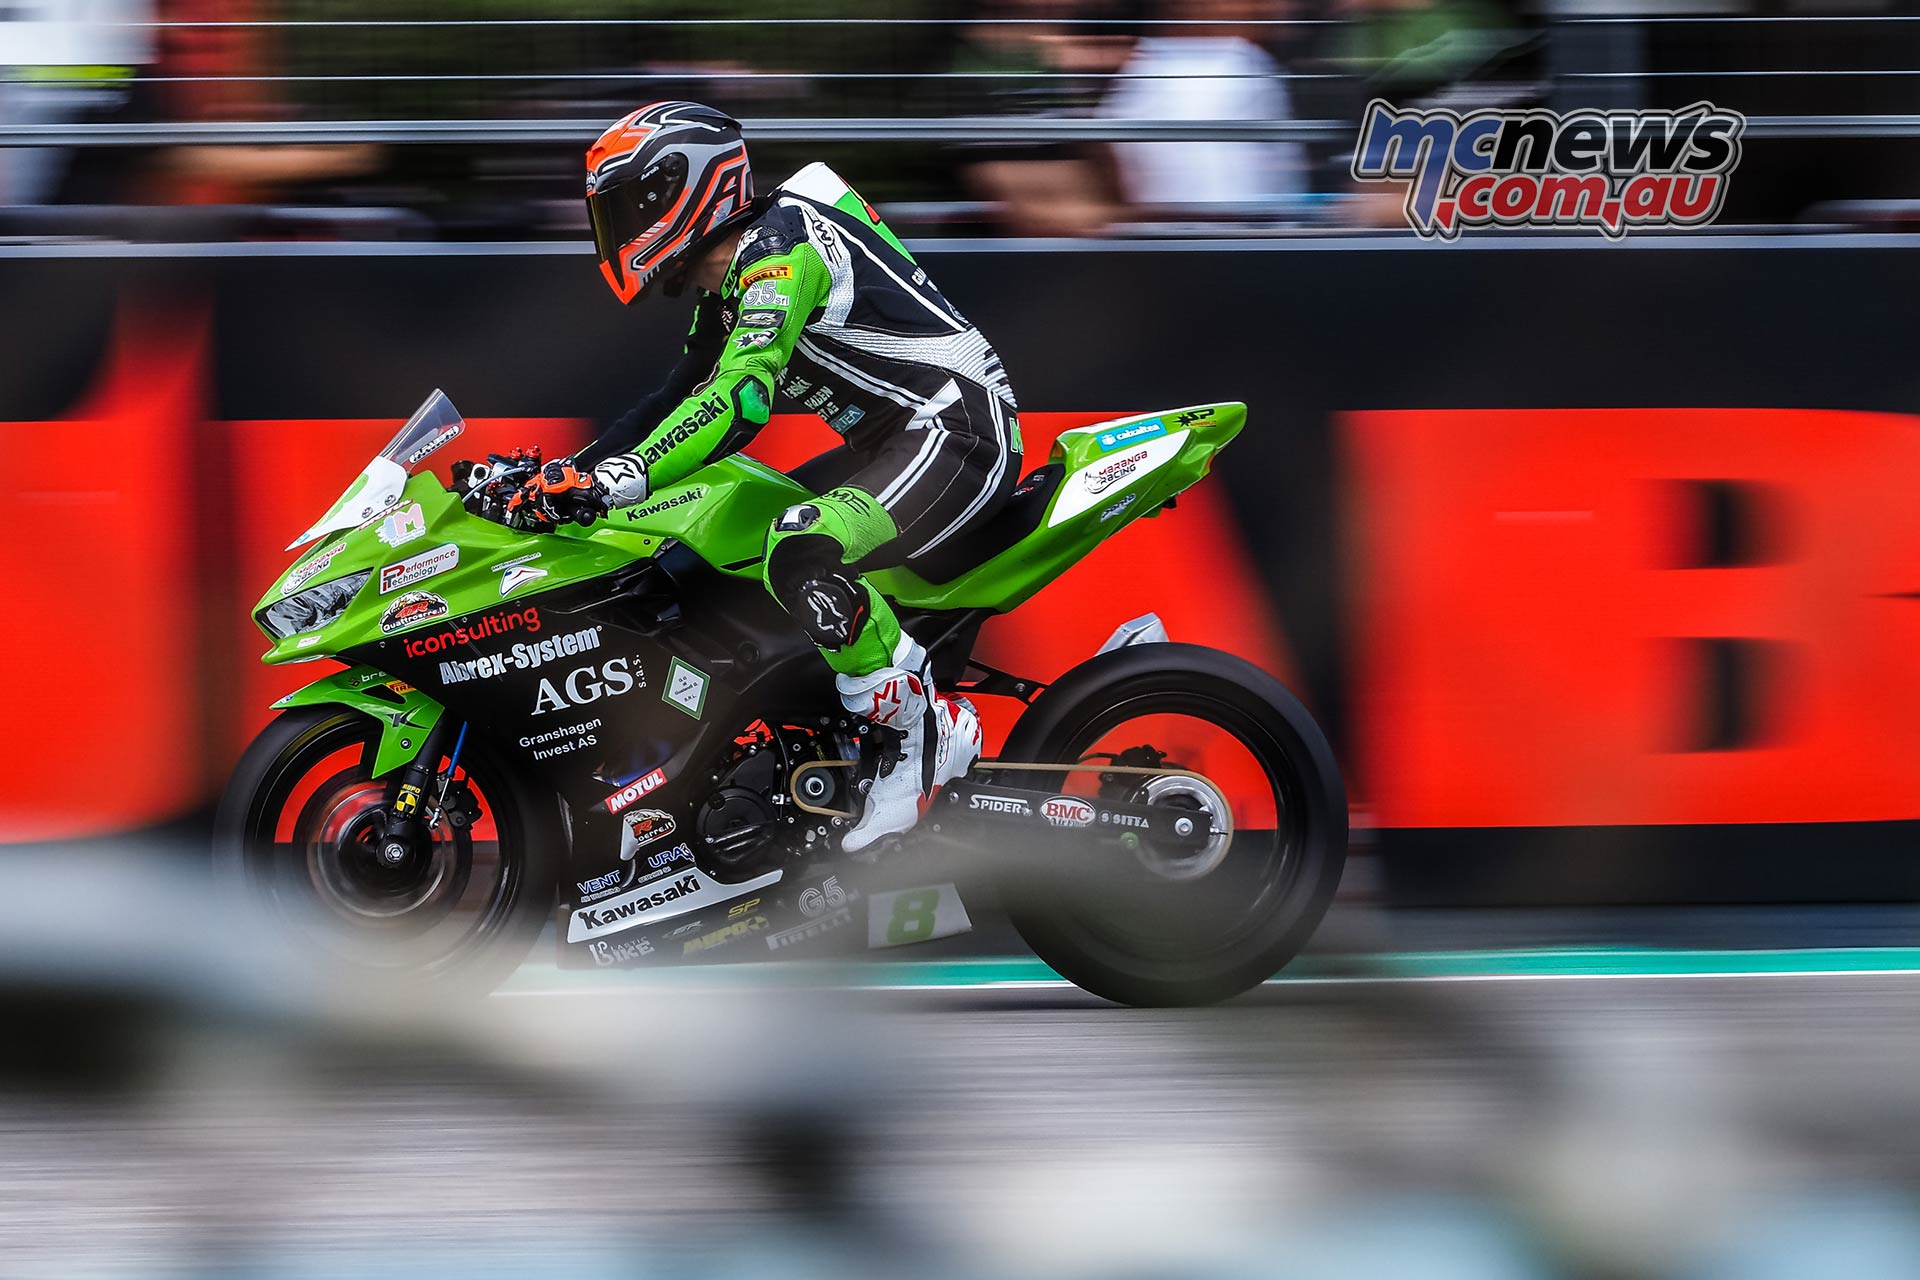 WSBK Rnd Imola Friday WorldSSP Friday Action Perez